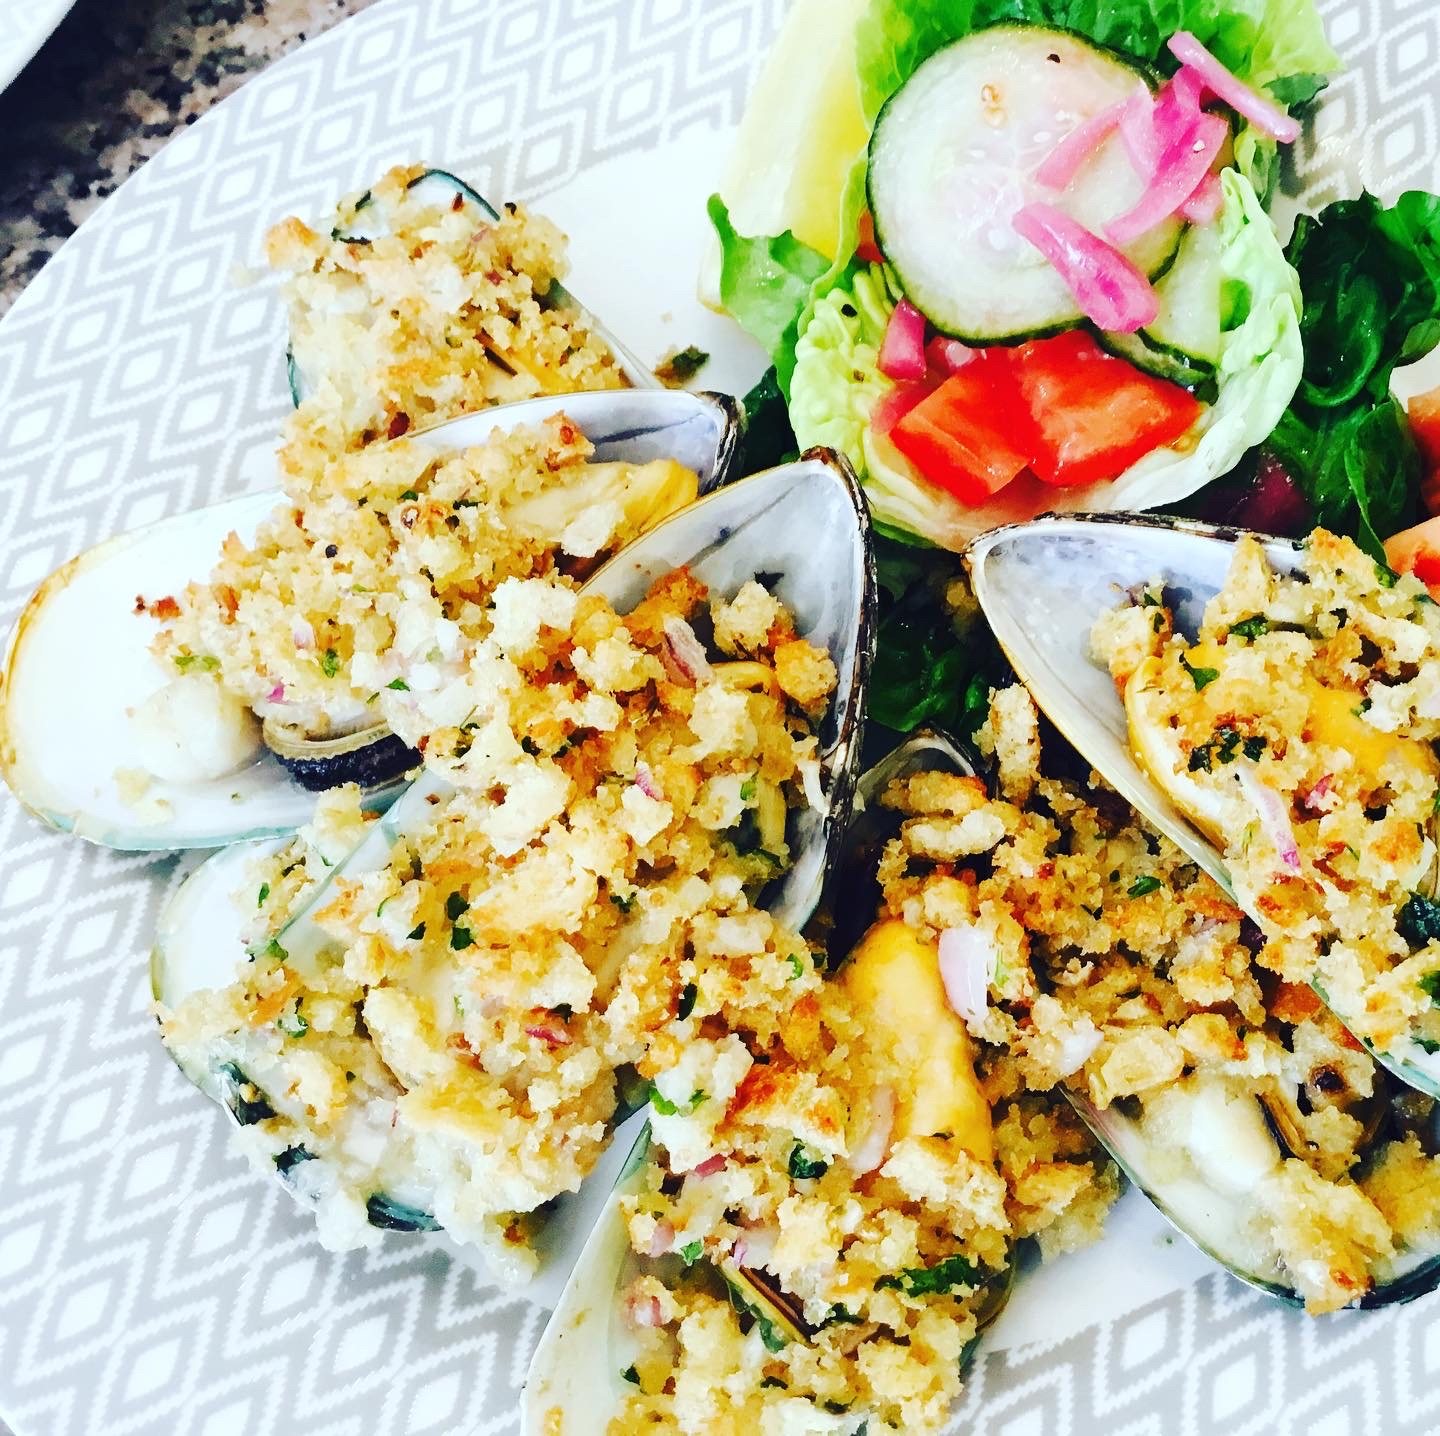 Green lip Mussels with parsley lemon and garlic crumb